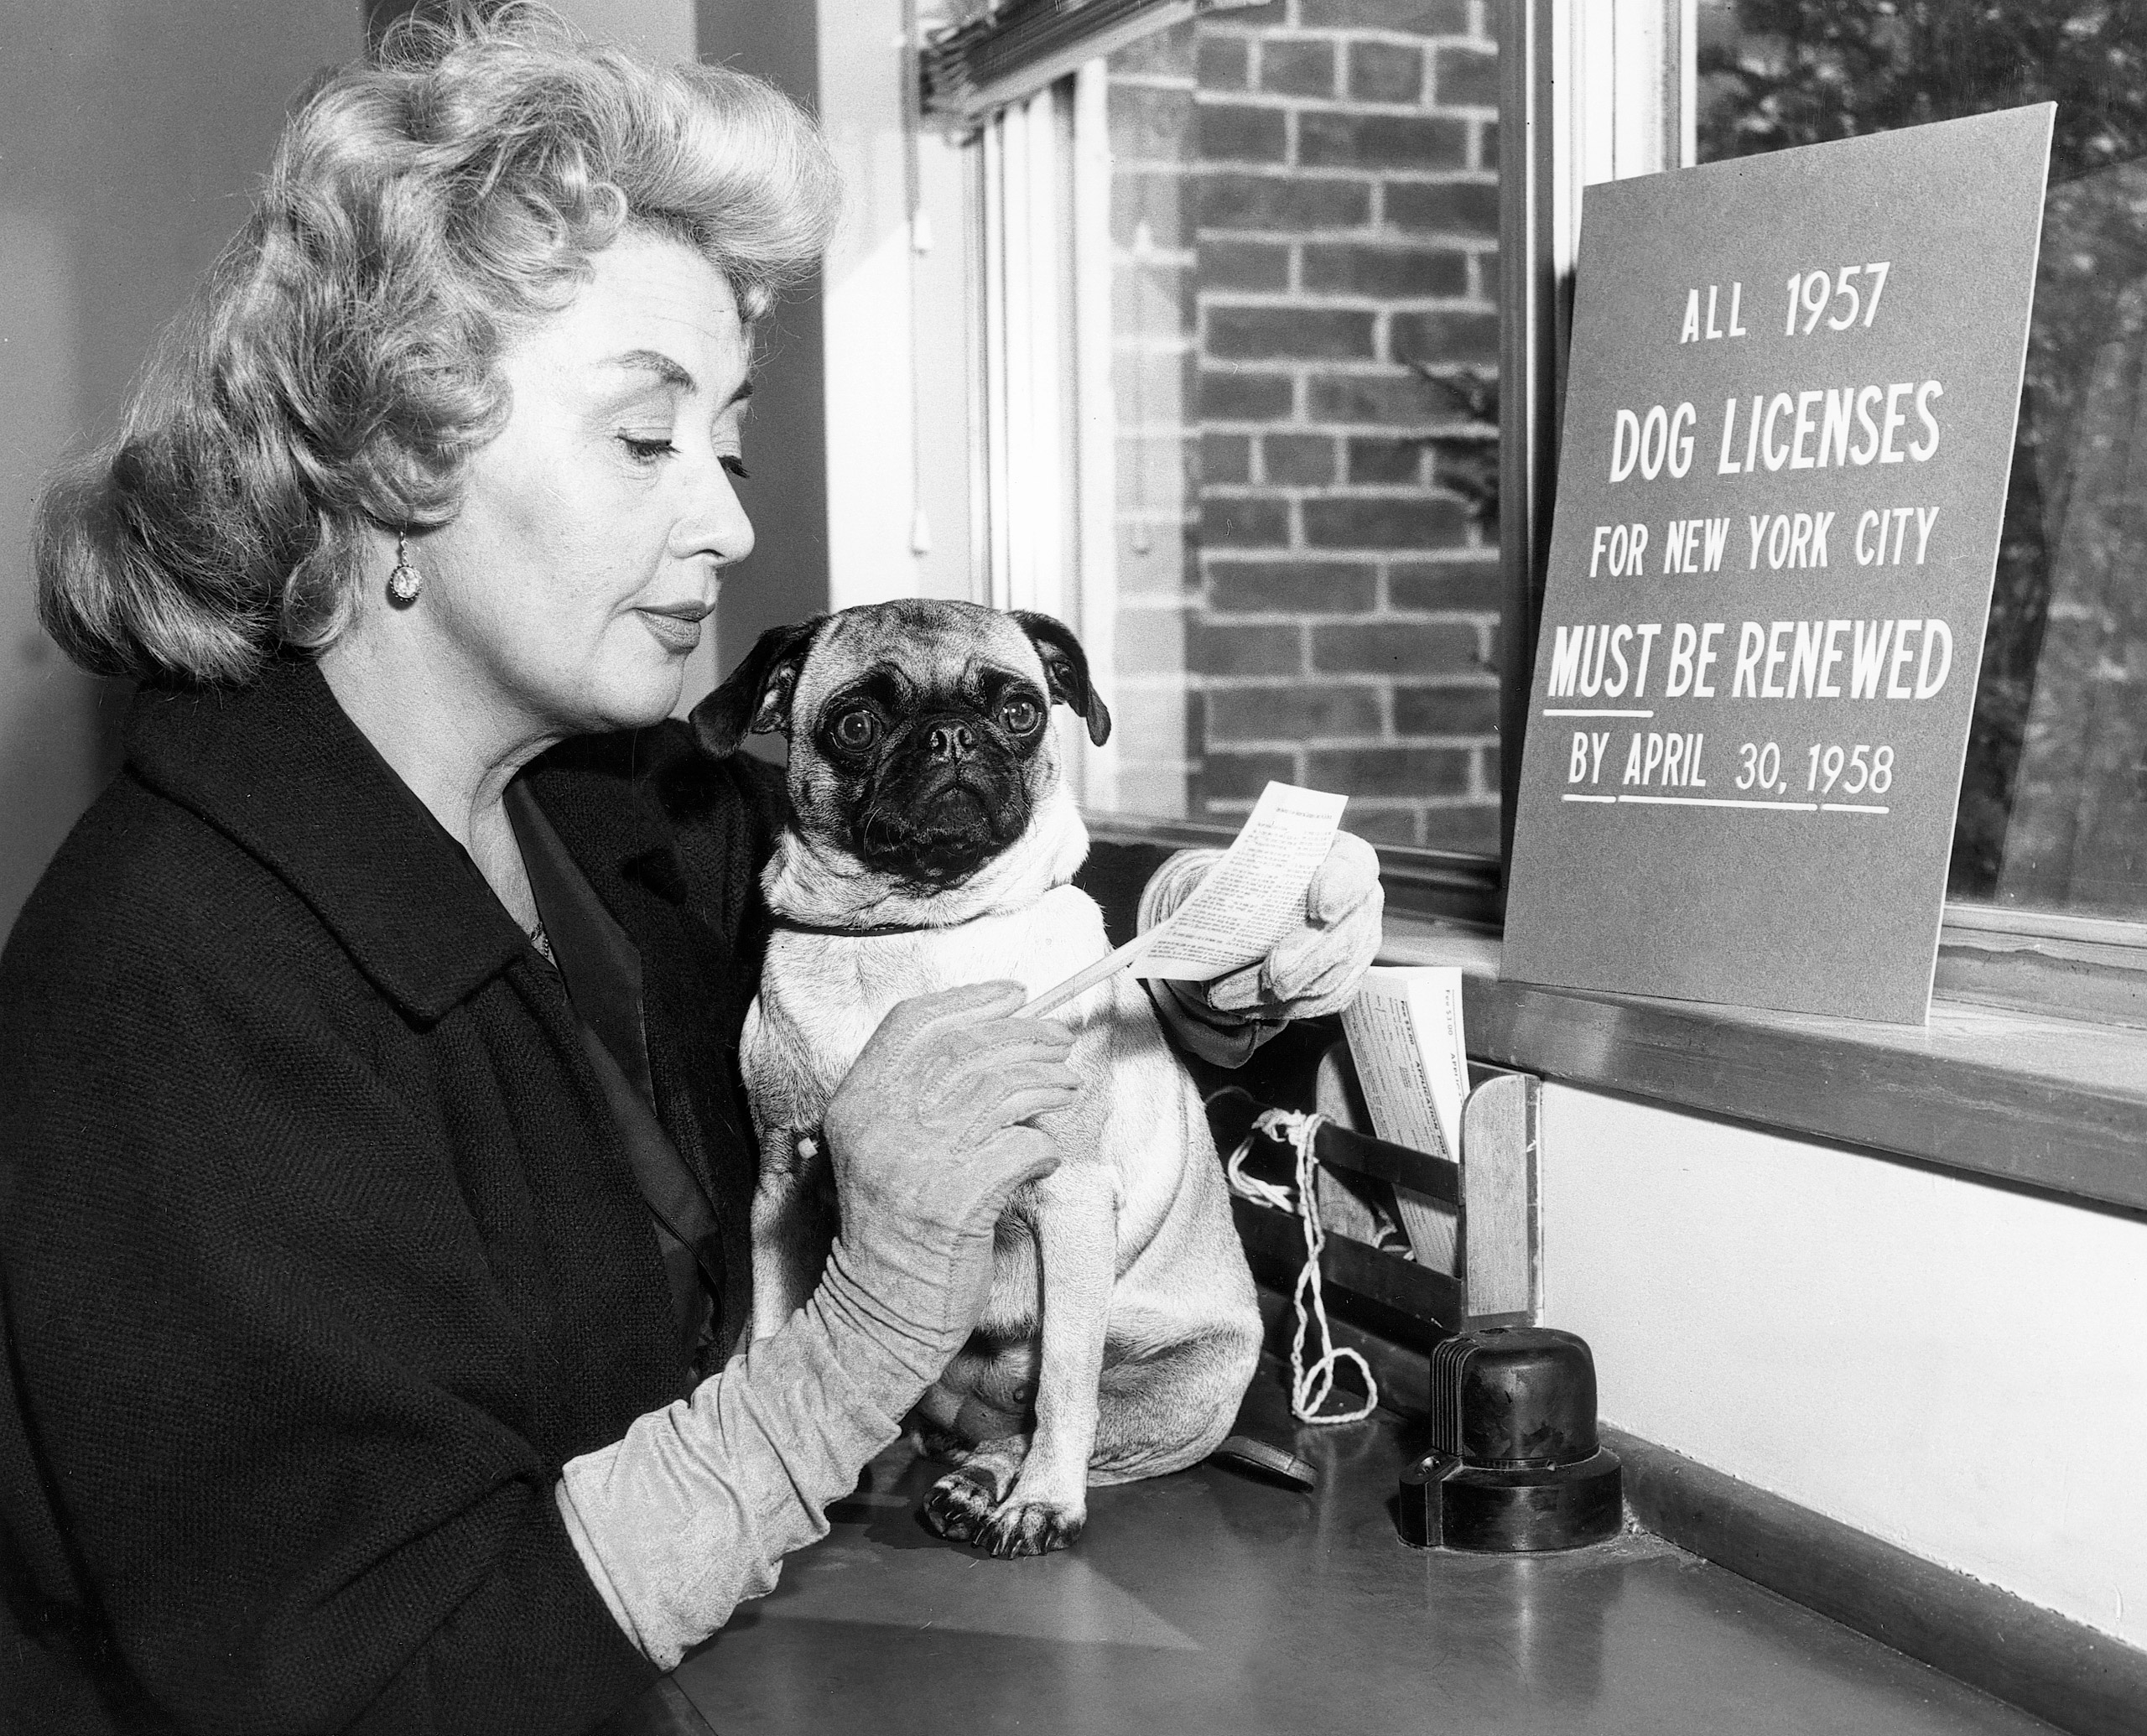 Actress Joan Blondell and her pug promote dog licensing for the ASPCA, 1958.